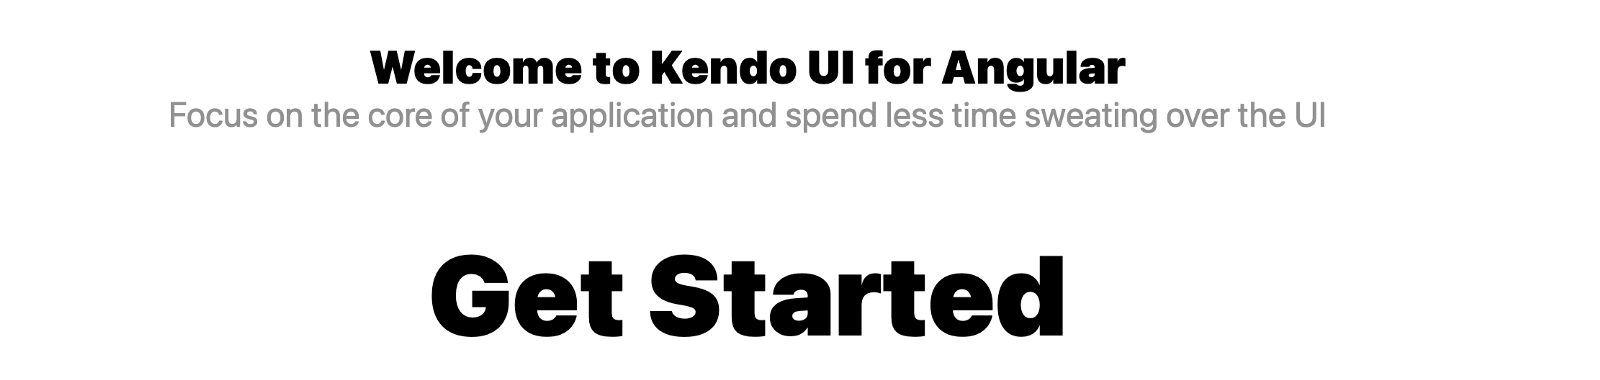 Welcome to Kendo UI for Angular. Focus on the core of your application and spend less time sweating over the UI. Get Started.